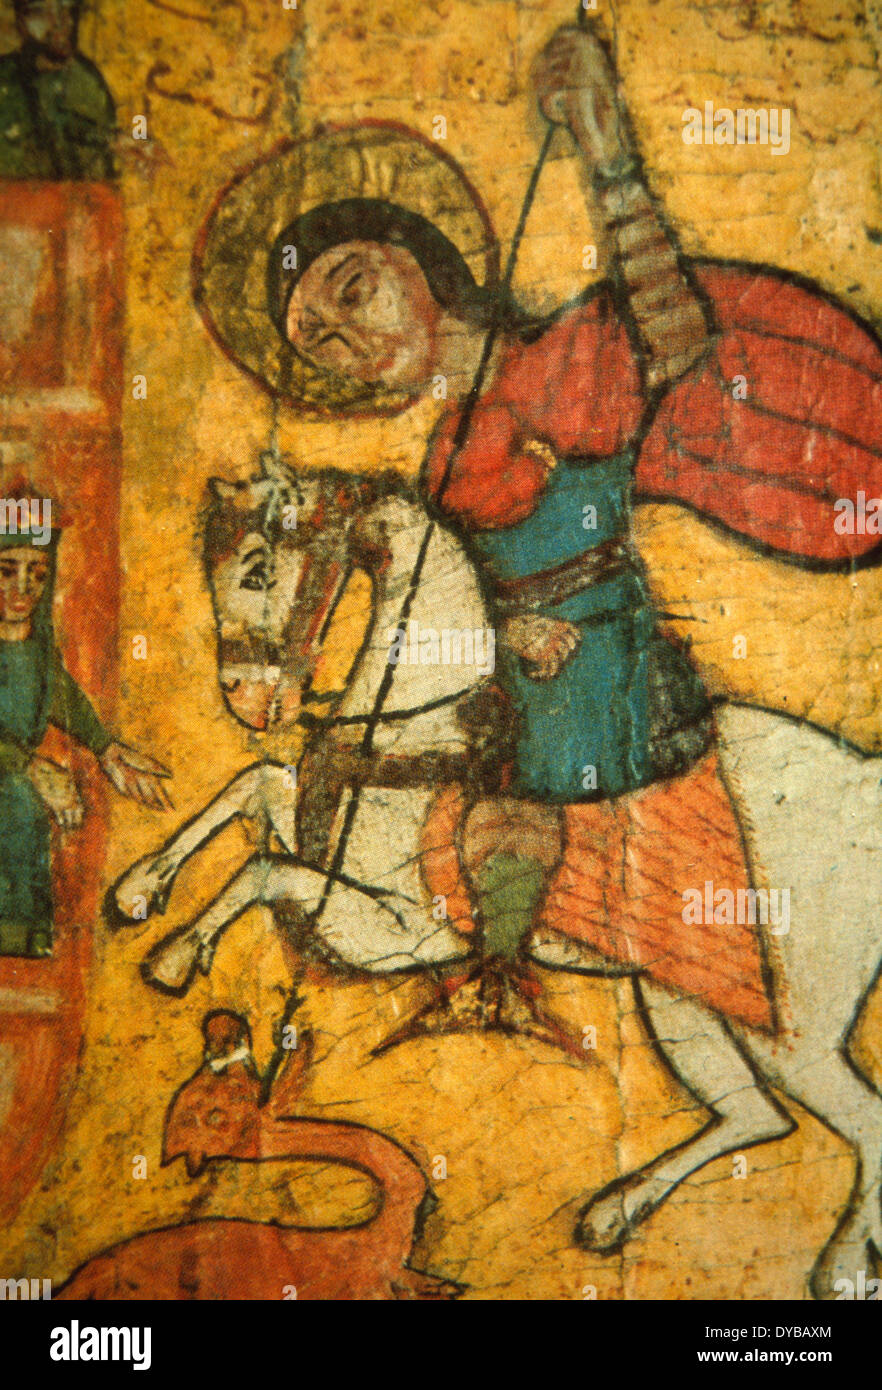 Old icon of St George slaying the Dragon in a church in Cairo - Stock Image